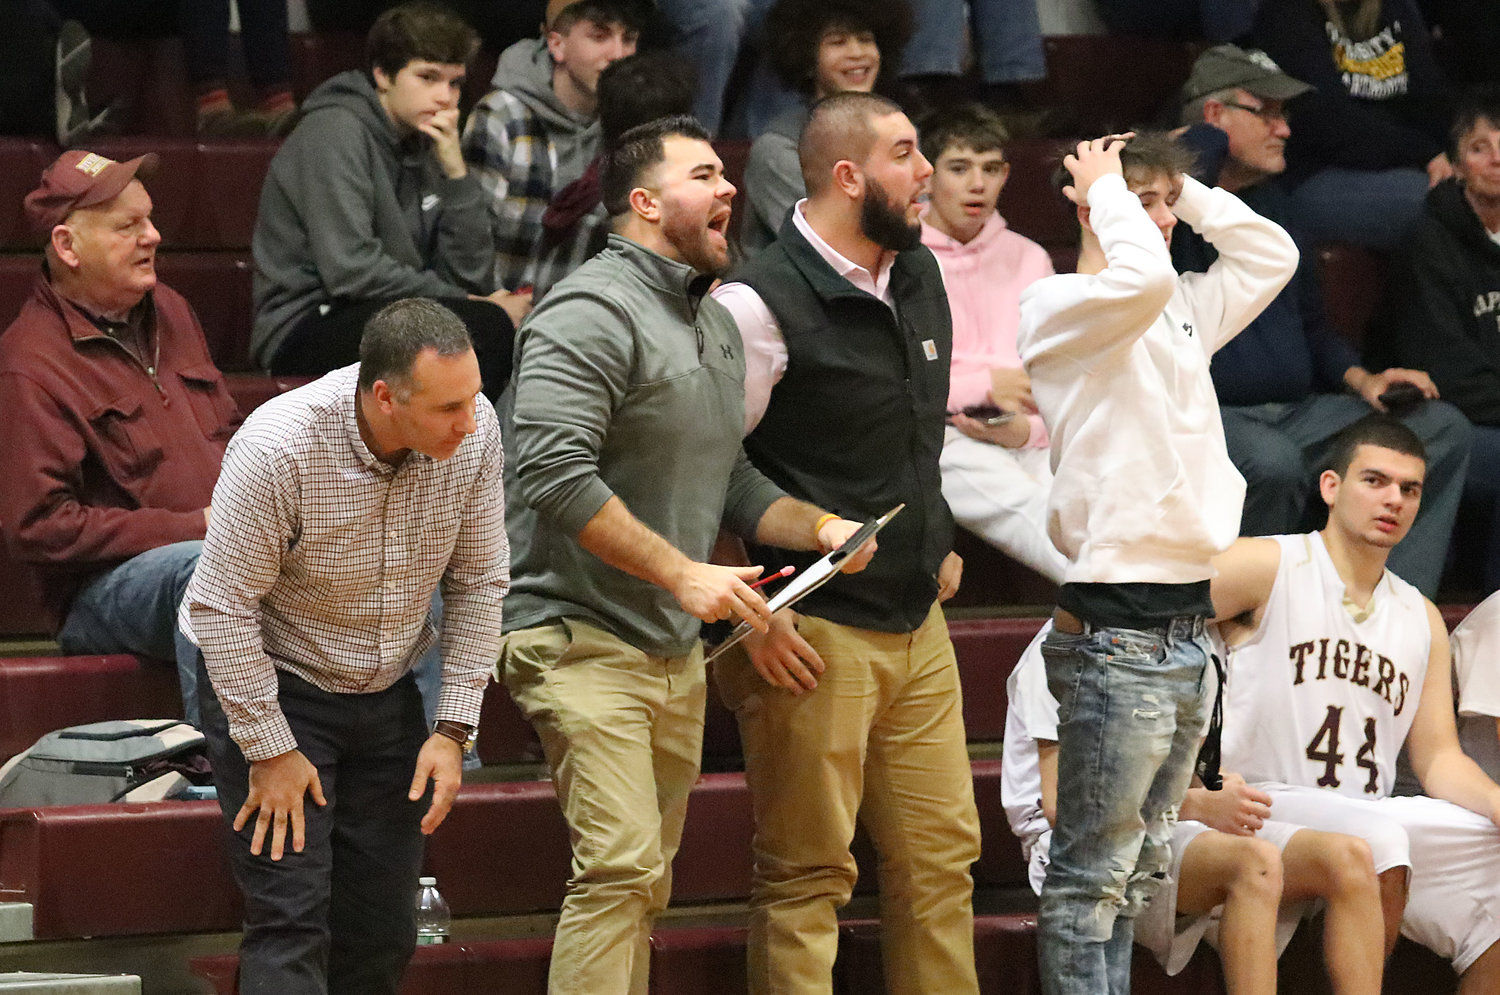 Tiverton Head Coach Dave Landoch (left) and his staff don't like a charging call by the referee in the second half.